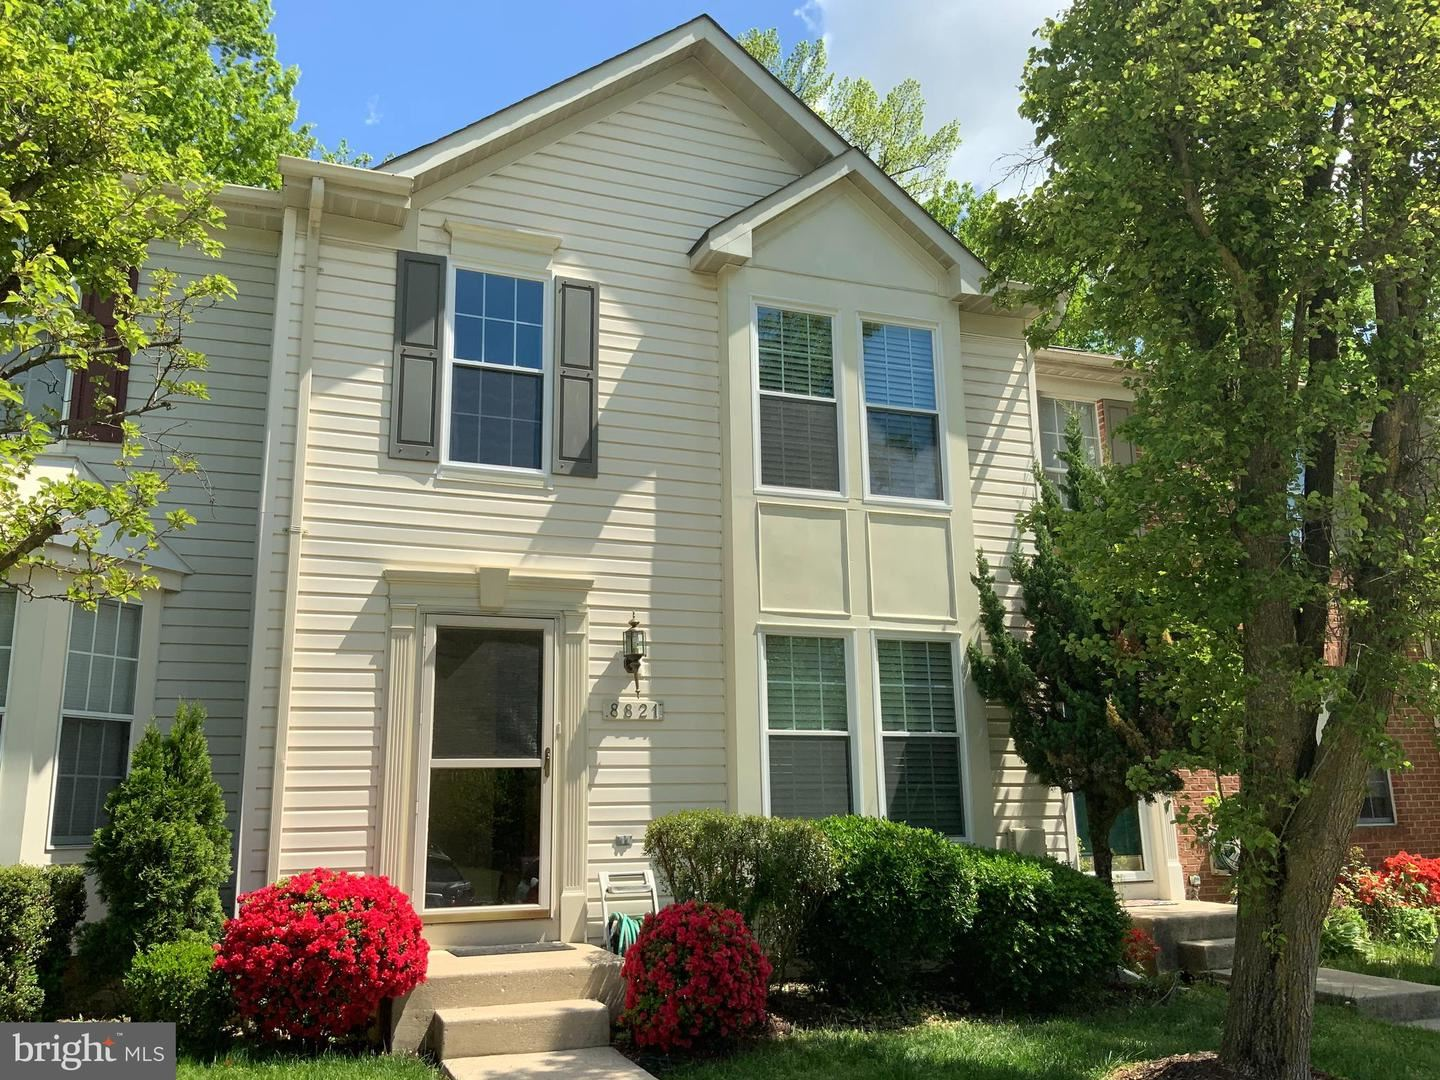 8821 EVERMORE CT, Laurel, MD 20723 - MLS#: MDHW293638